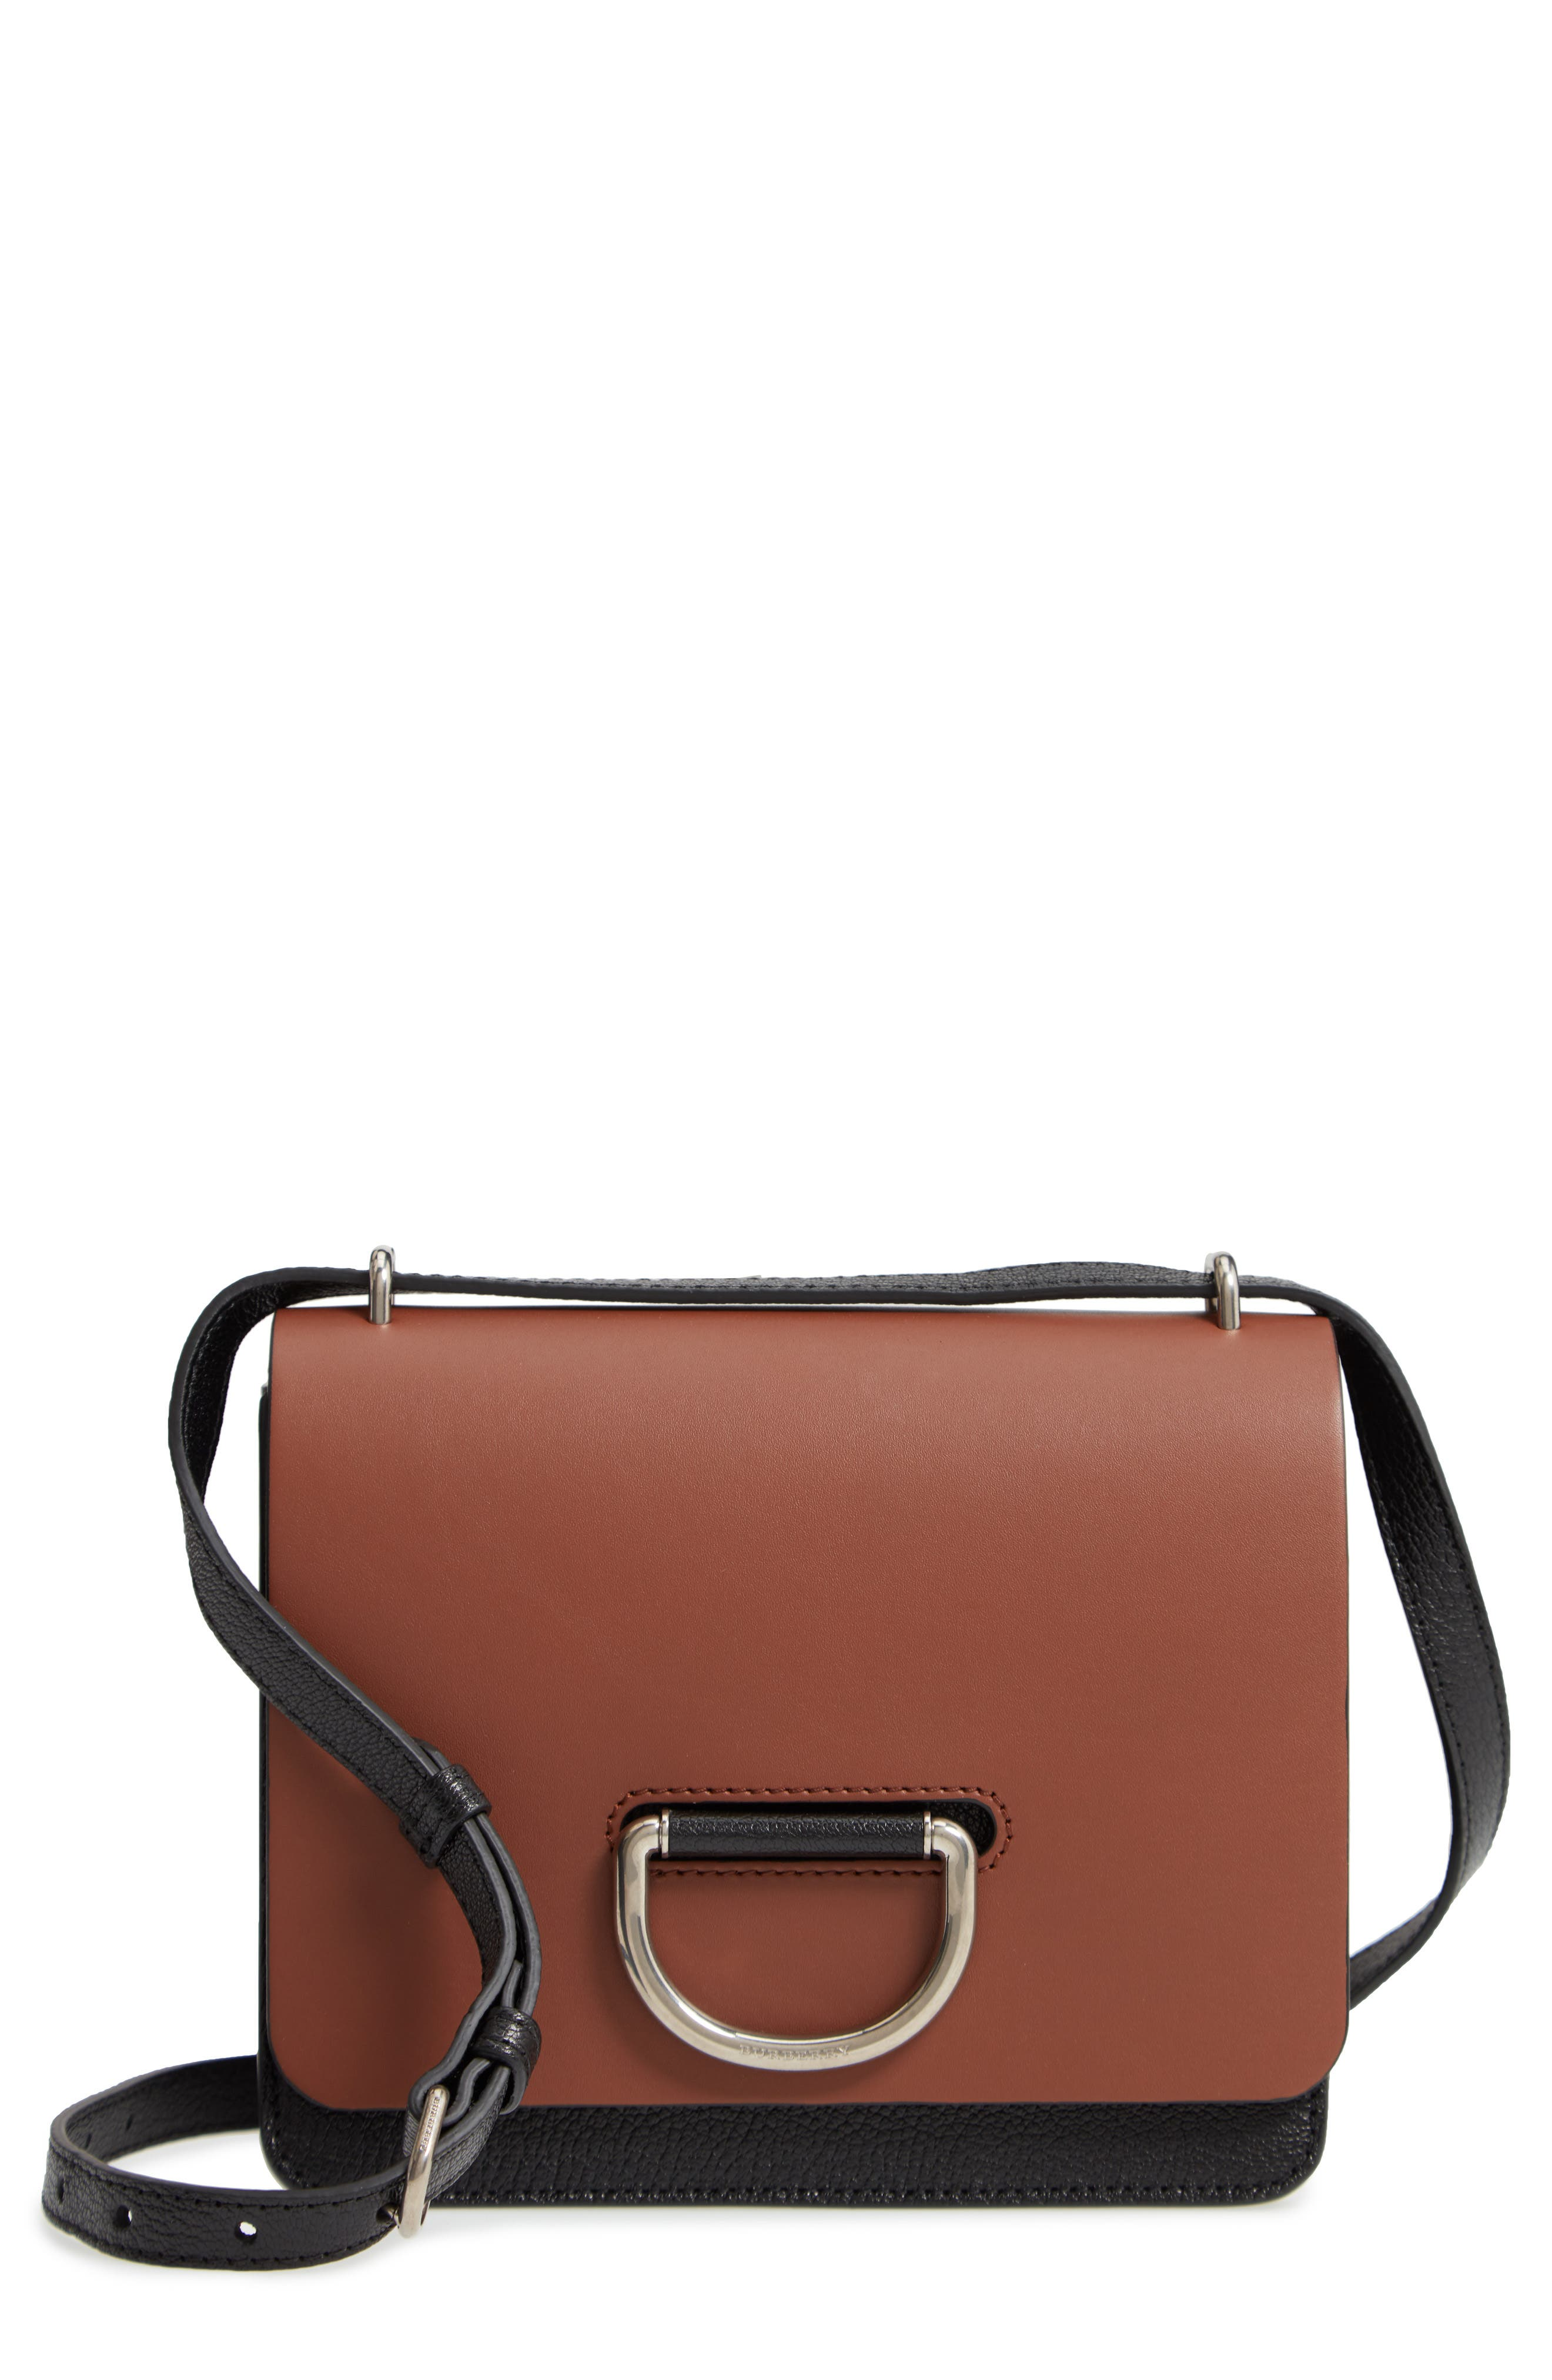 690a685d534d Bags Burberry for Women  Clothing